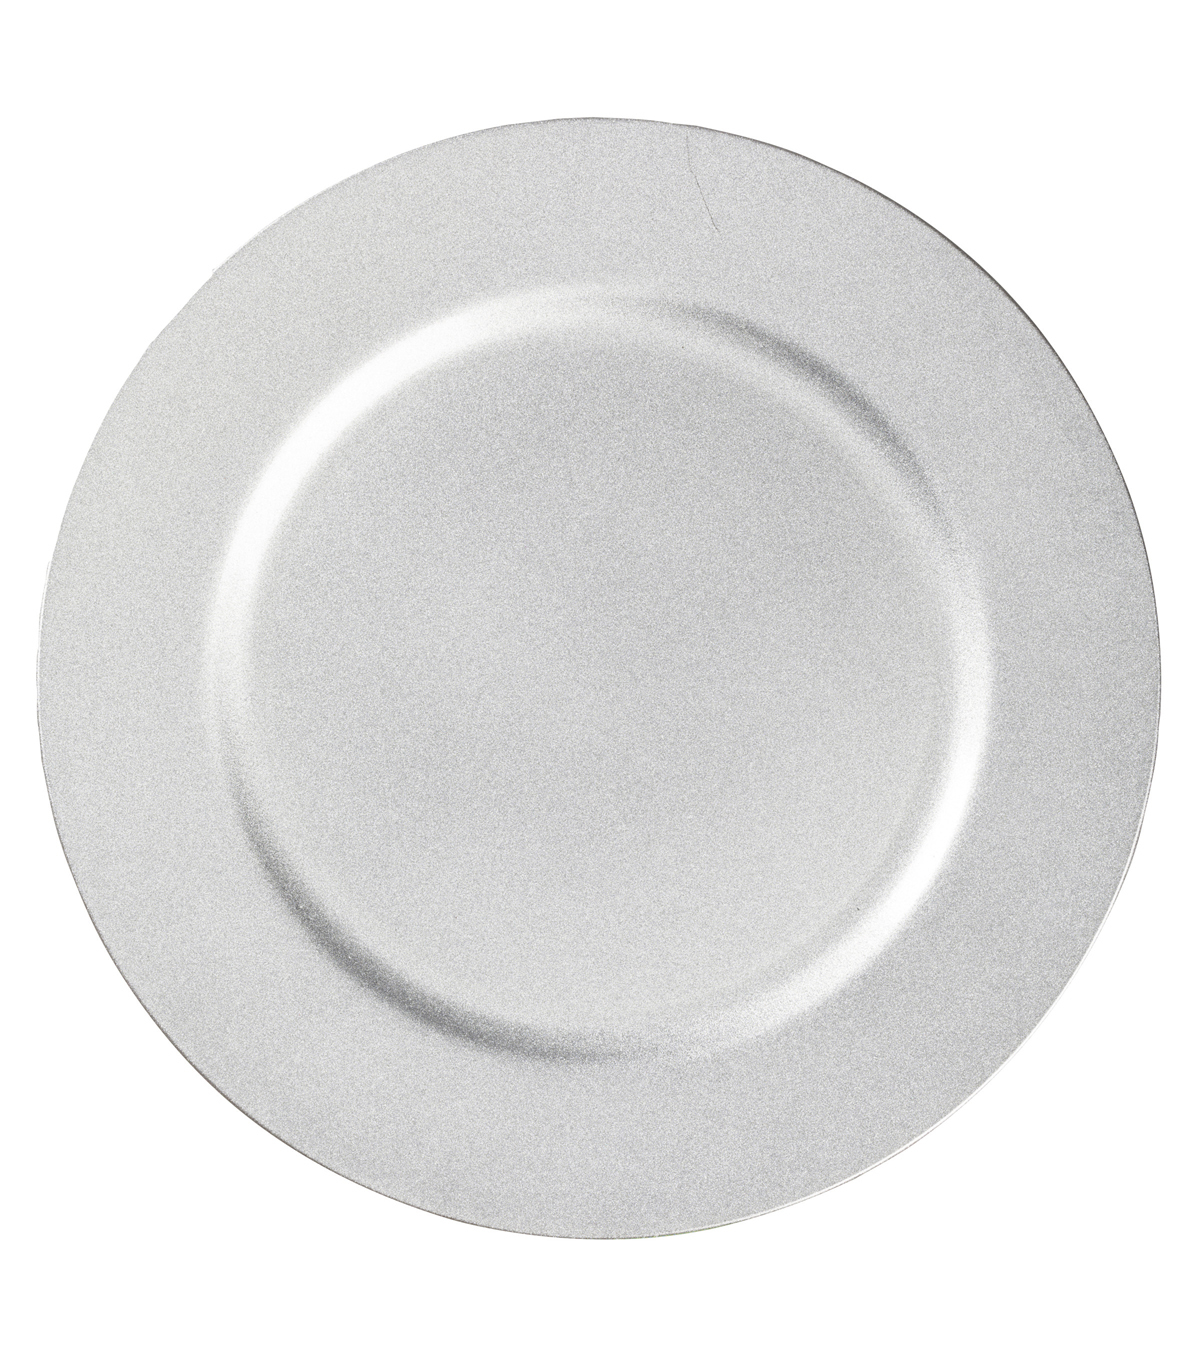 Hudson 43 Candle \u0026 Light Collection 13\\u0022 Decorative Plate-Silver  sc 1 st  Joann & 13 inch Silver Charger Plate   JOANN